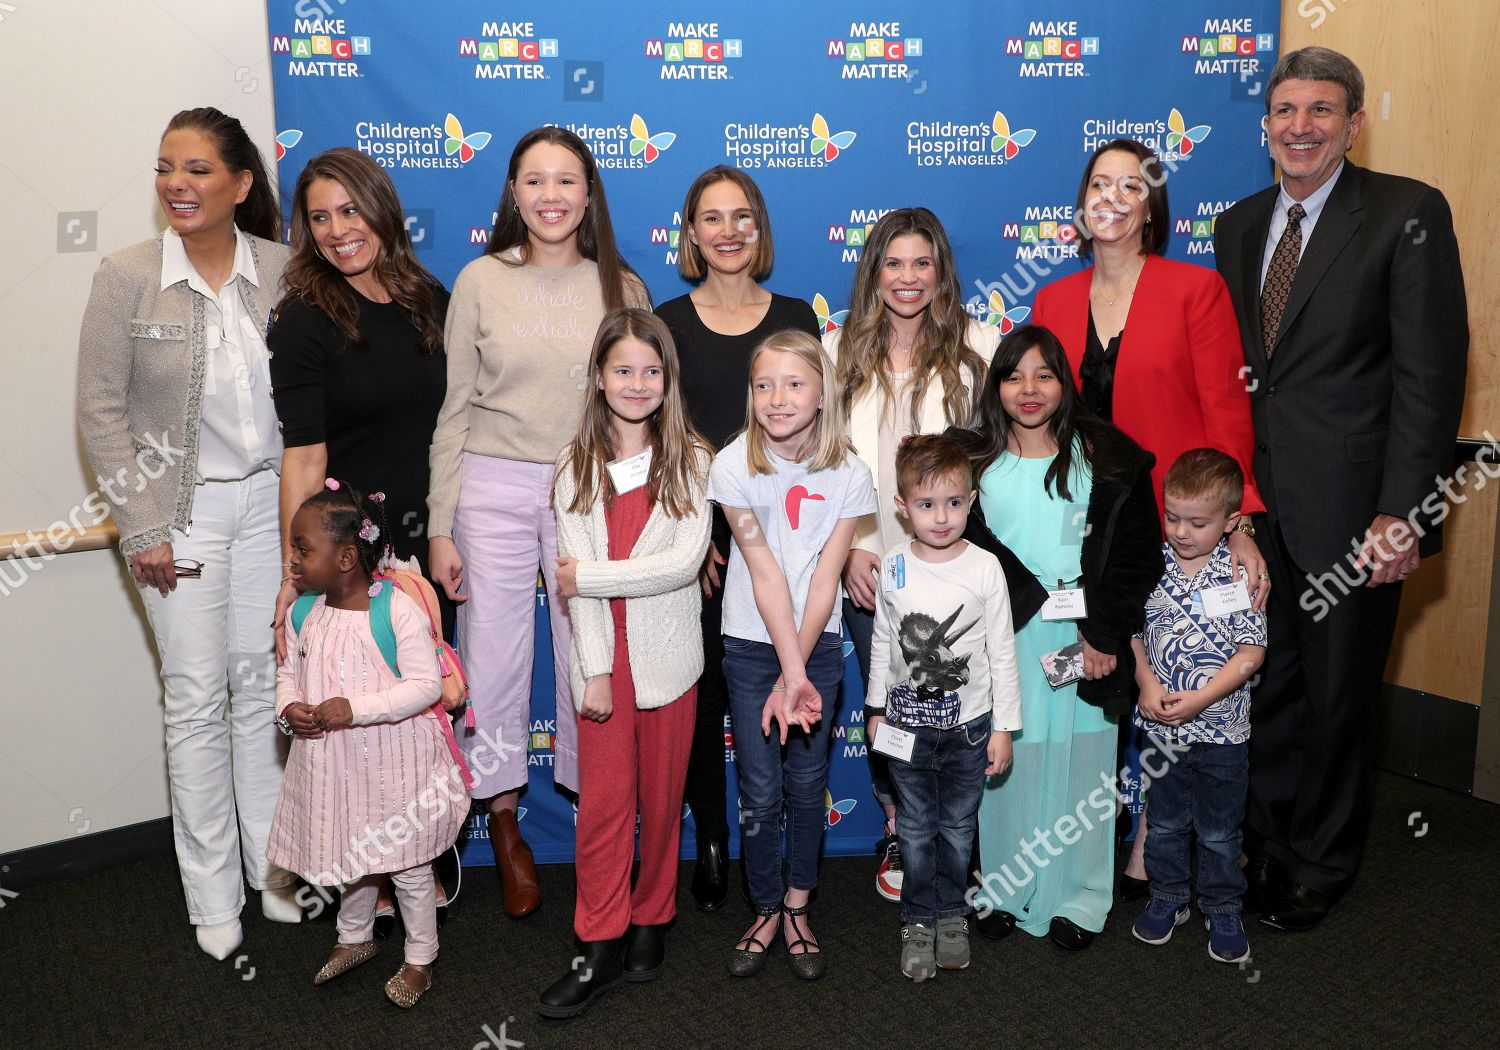 Stock photo of Fifth Annual Make March Matter Fundraising Campaign Kick-Off, Arrivals, Los Angeles, USA - 02 Mar 2020